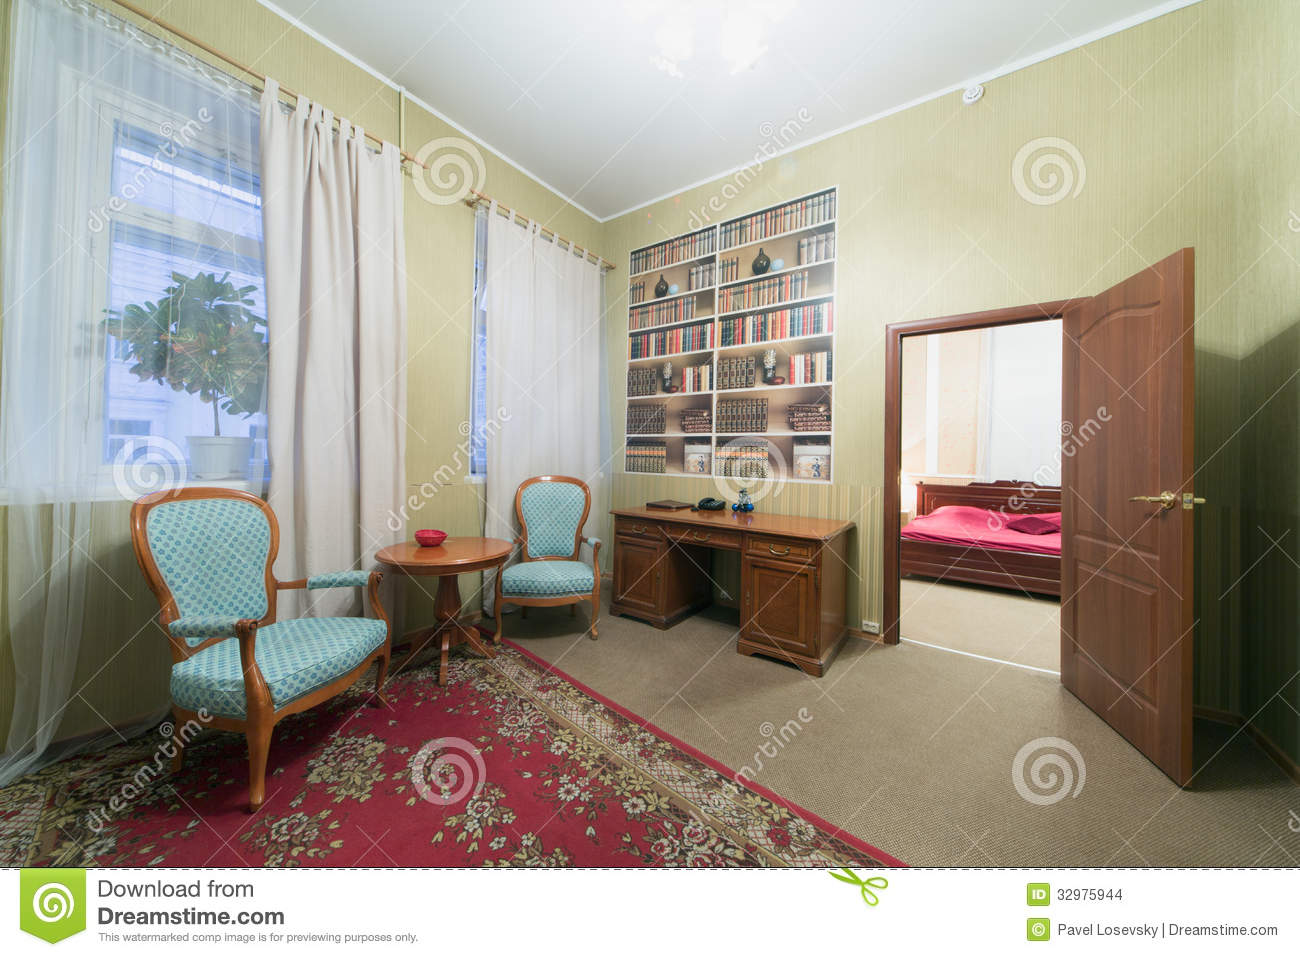 Sitting area with two chairs and an open door leading to the bedroom